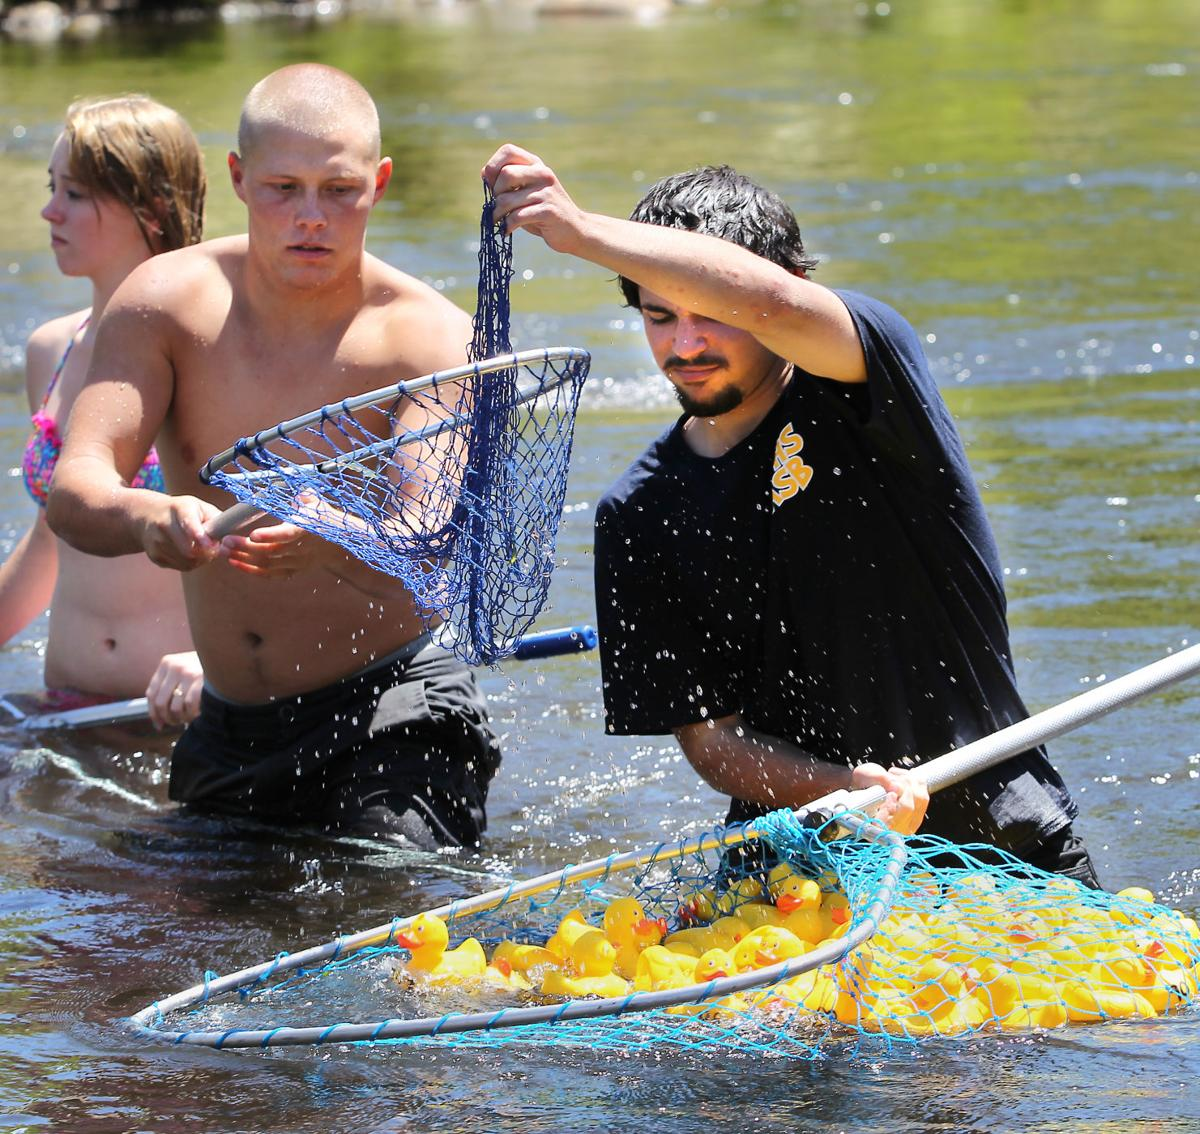 Duck and (dis)cover: Fun's in Kernville for 30th annual Rubber Ducky Races